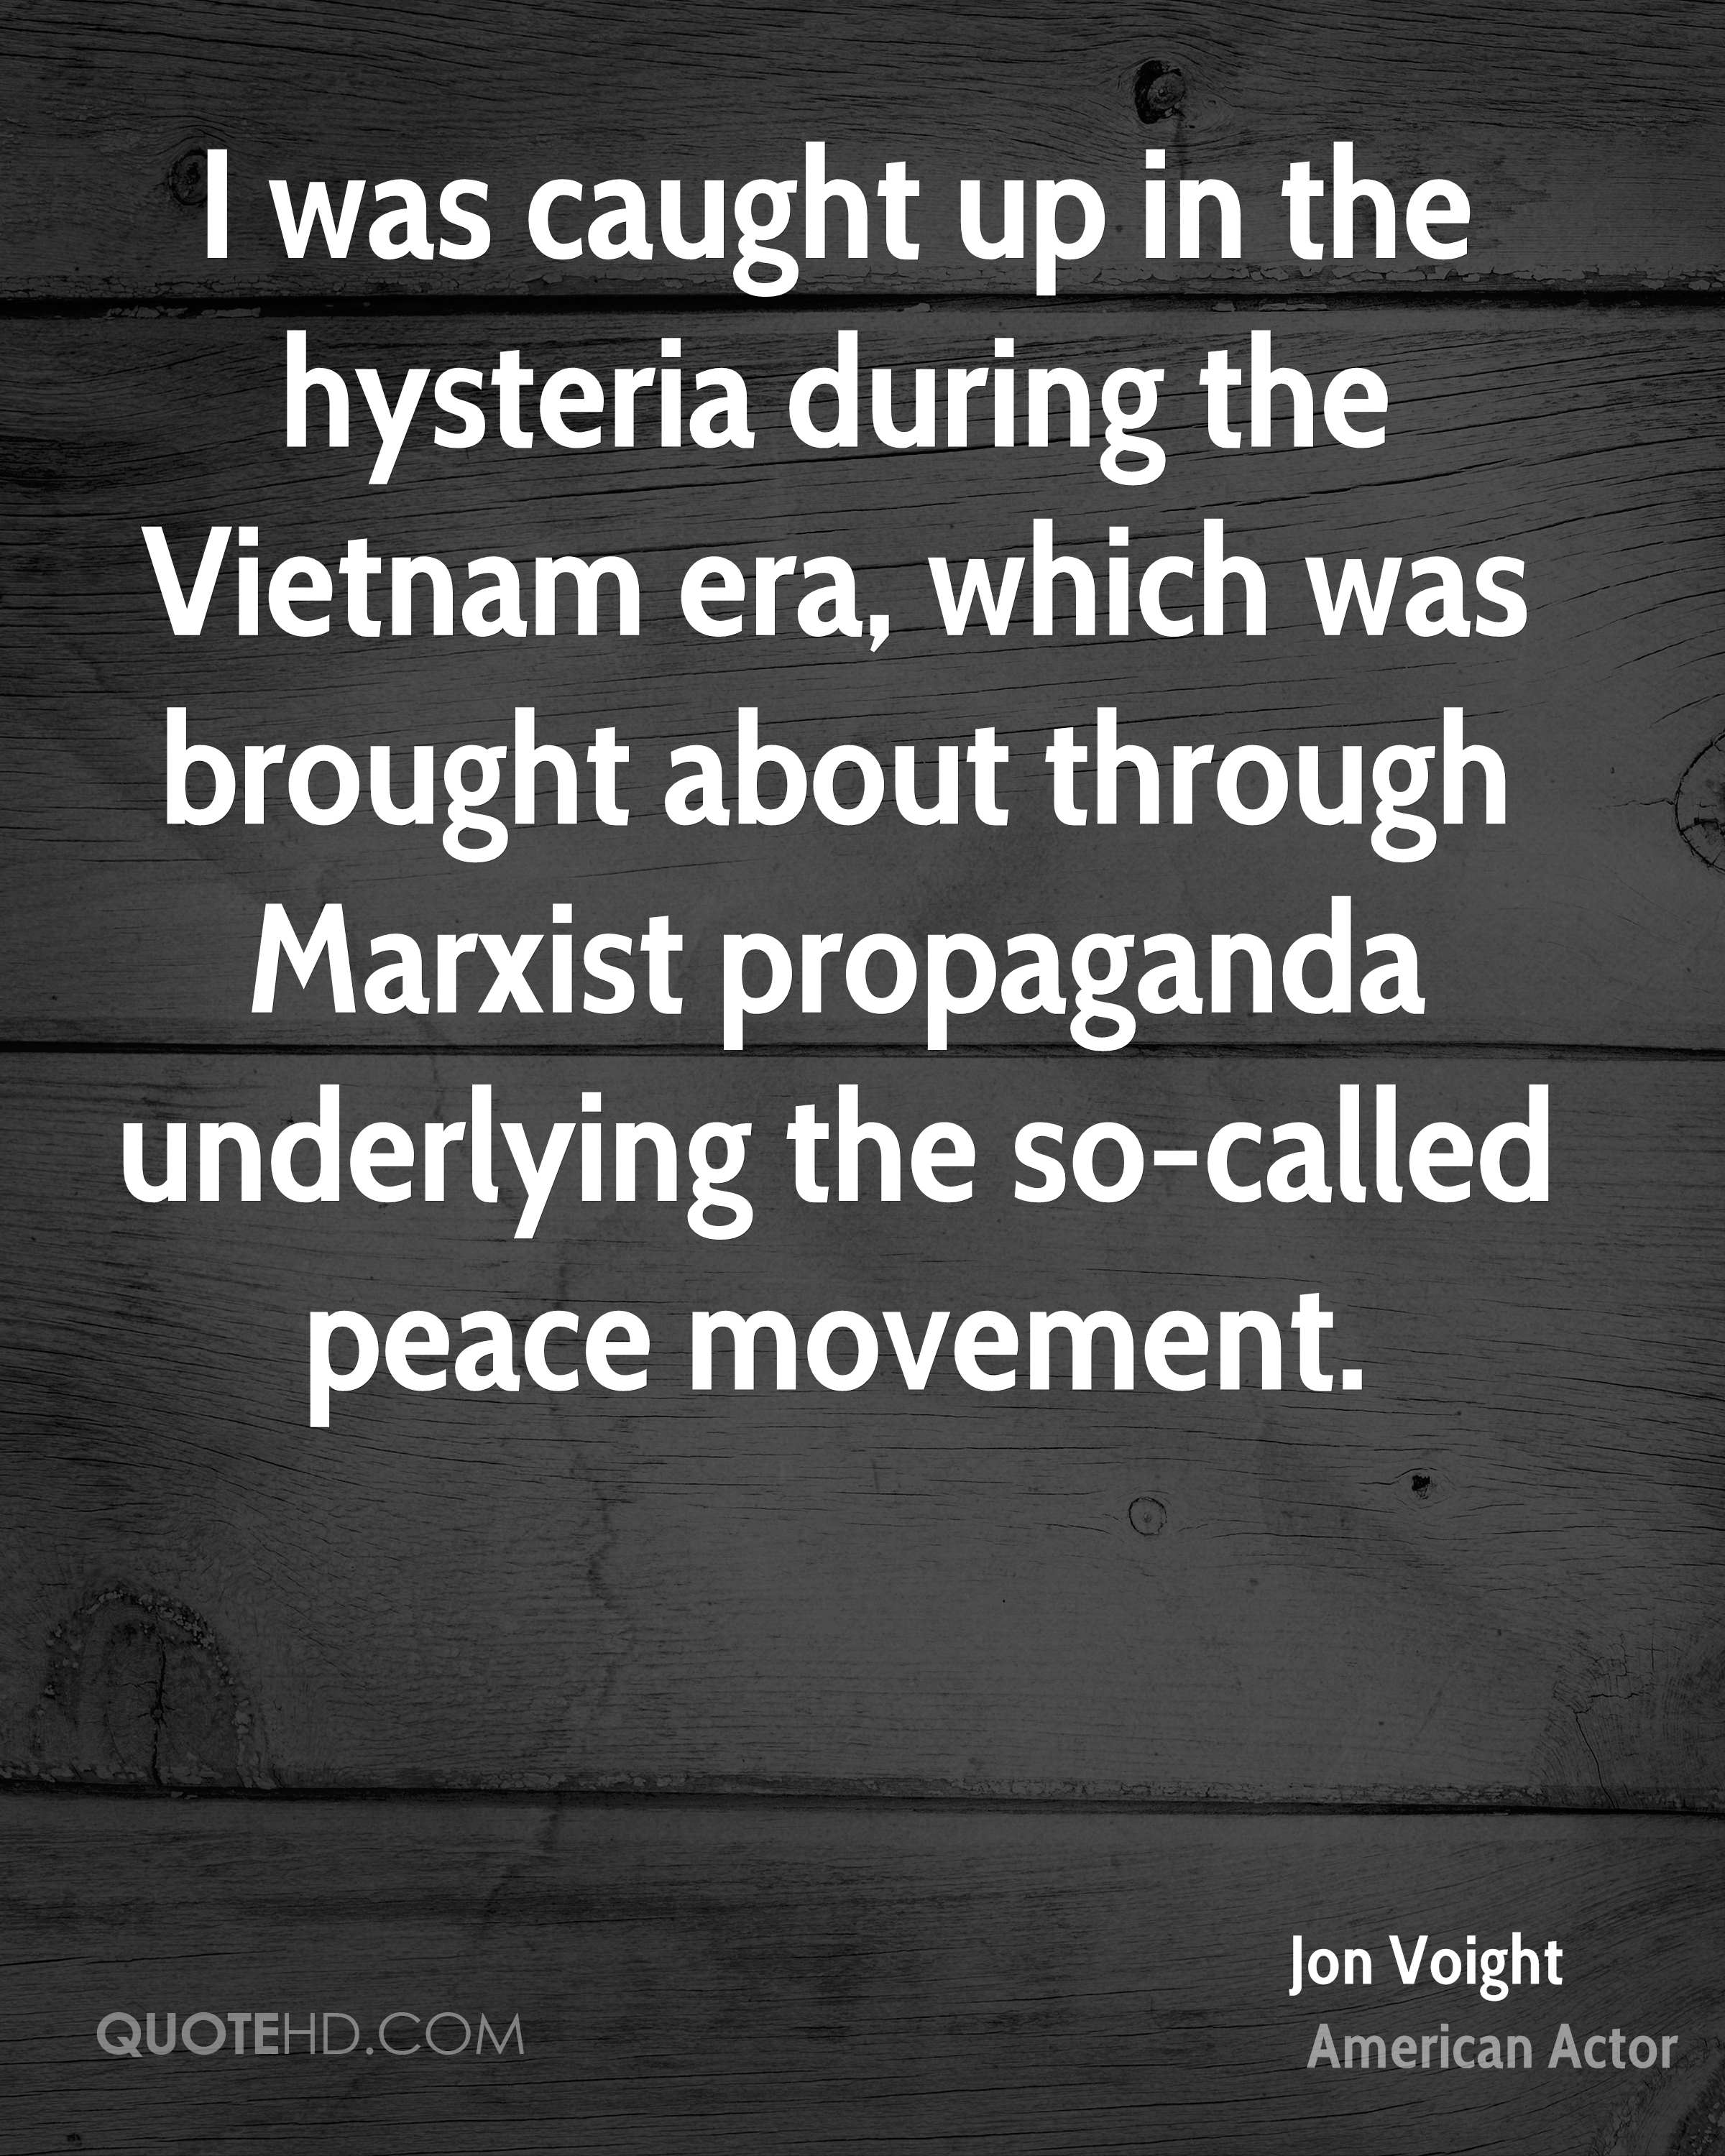 I was caught up in the hysteria during the Vietnam era, which was brought about through Marxist propaganda underlying the so-called peace movement.